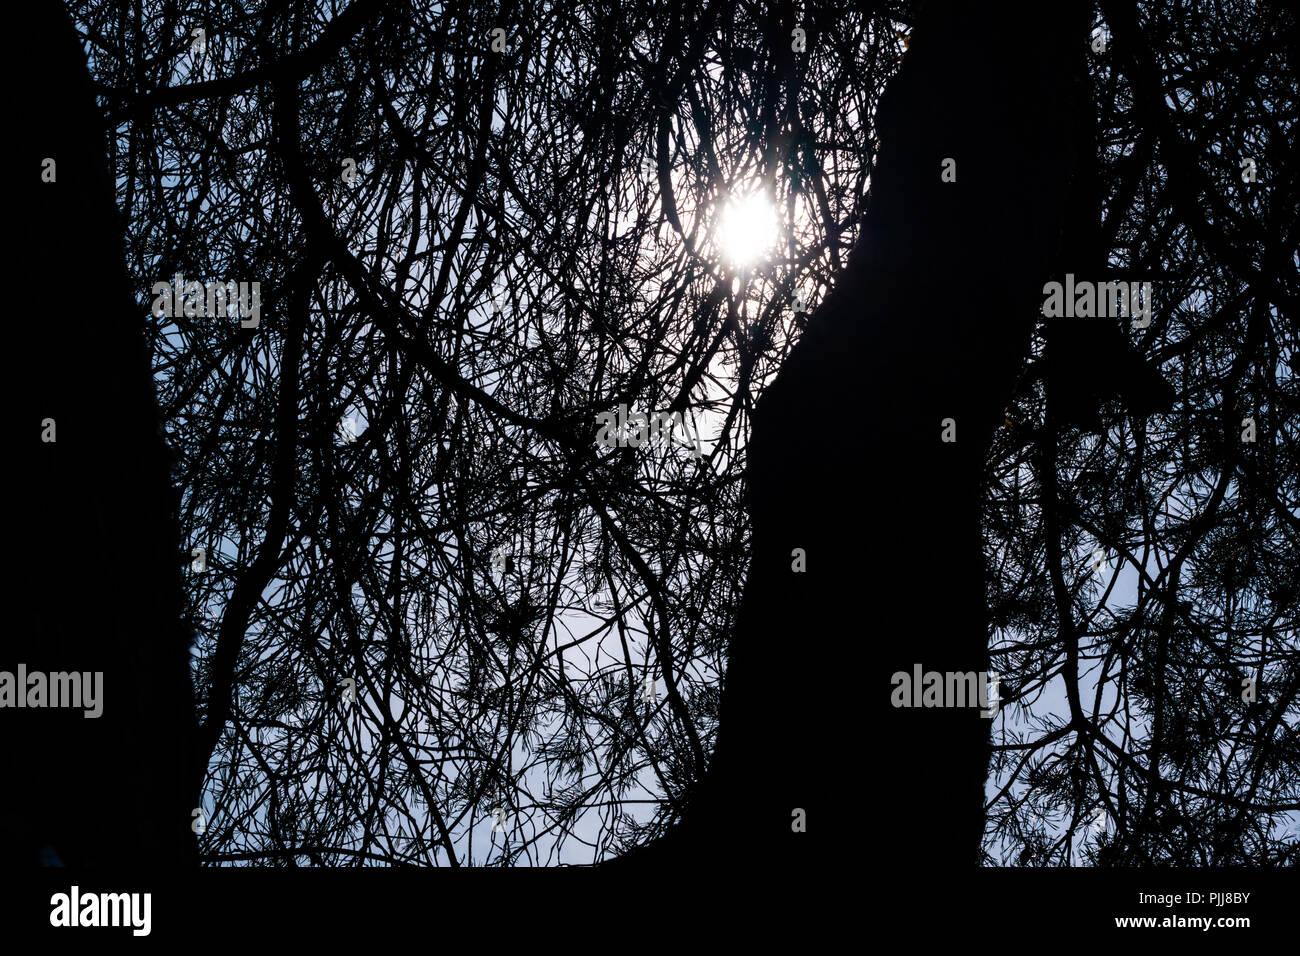 Sun filtering through trees creating a silhouette Stock Photo